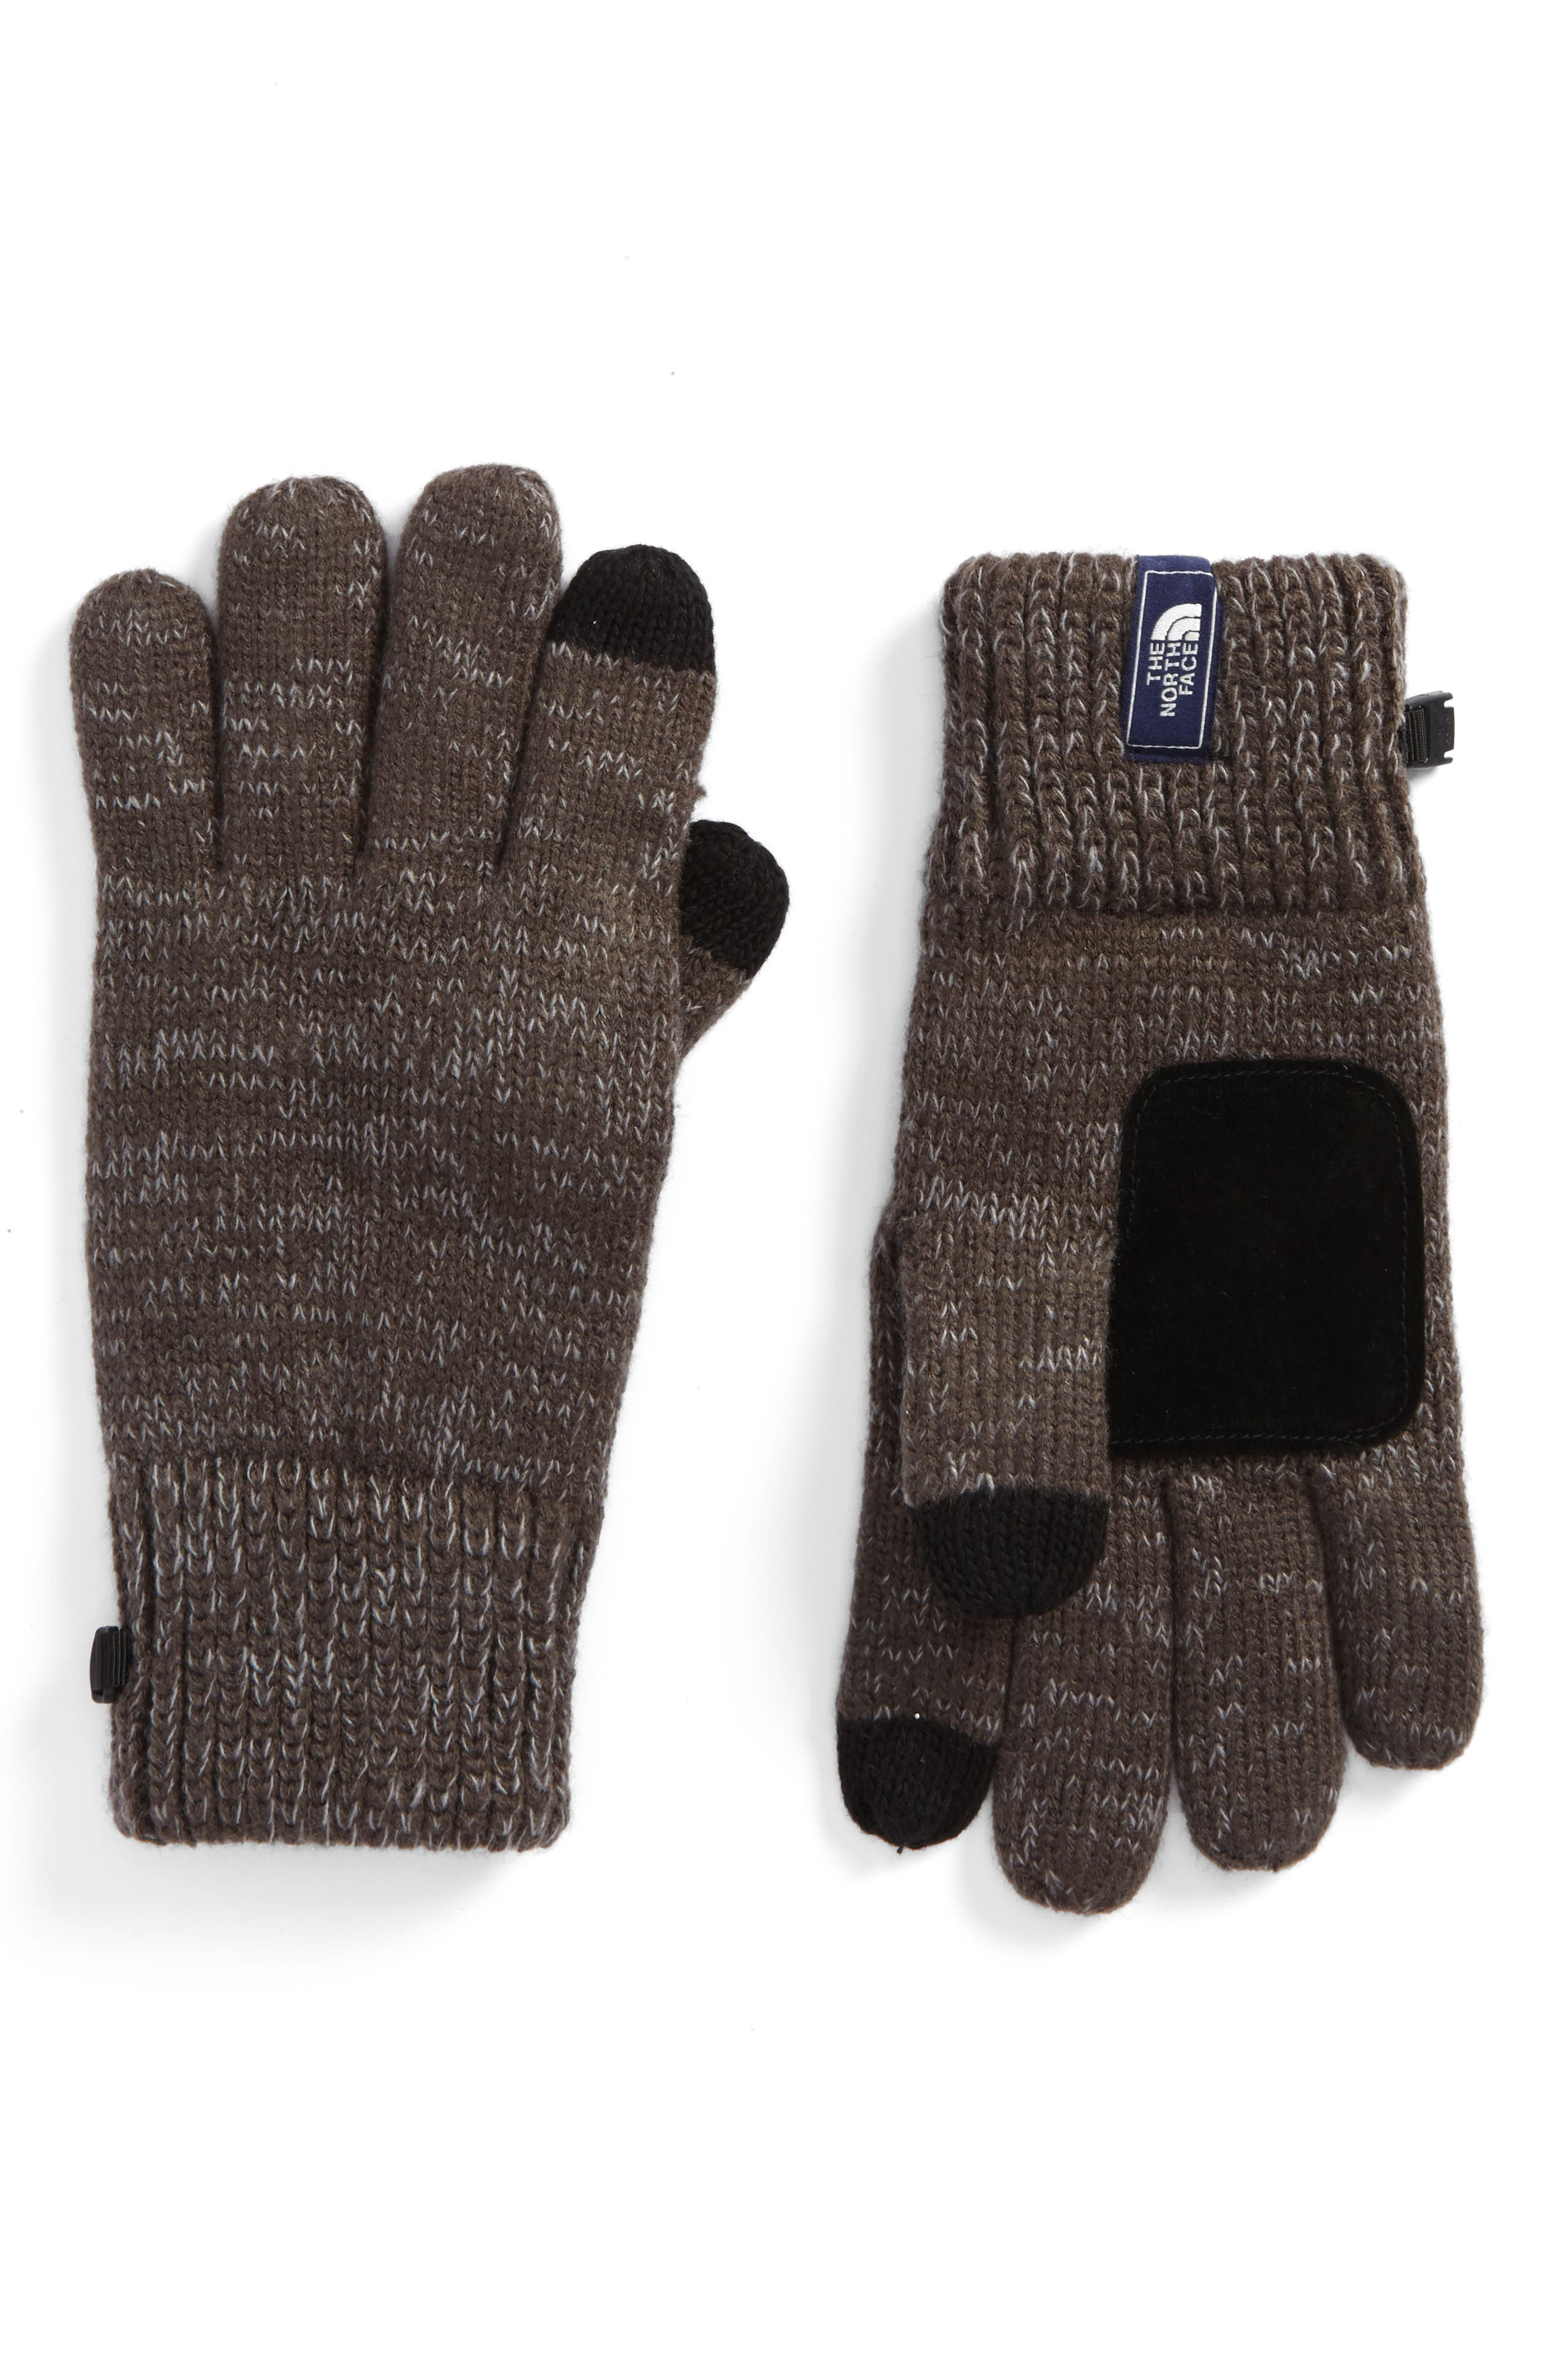 Etip Salty Dog Knit Tech Gloves,                         Main,                         color, GRAPHITE GREY/ MID GREY MARL